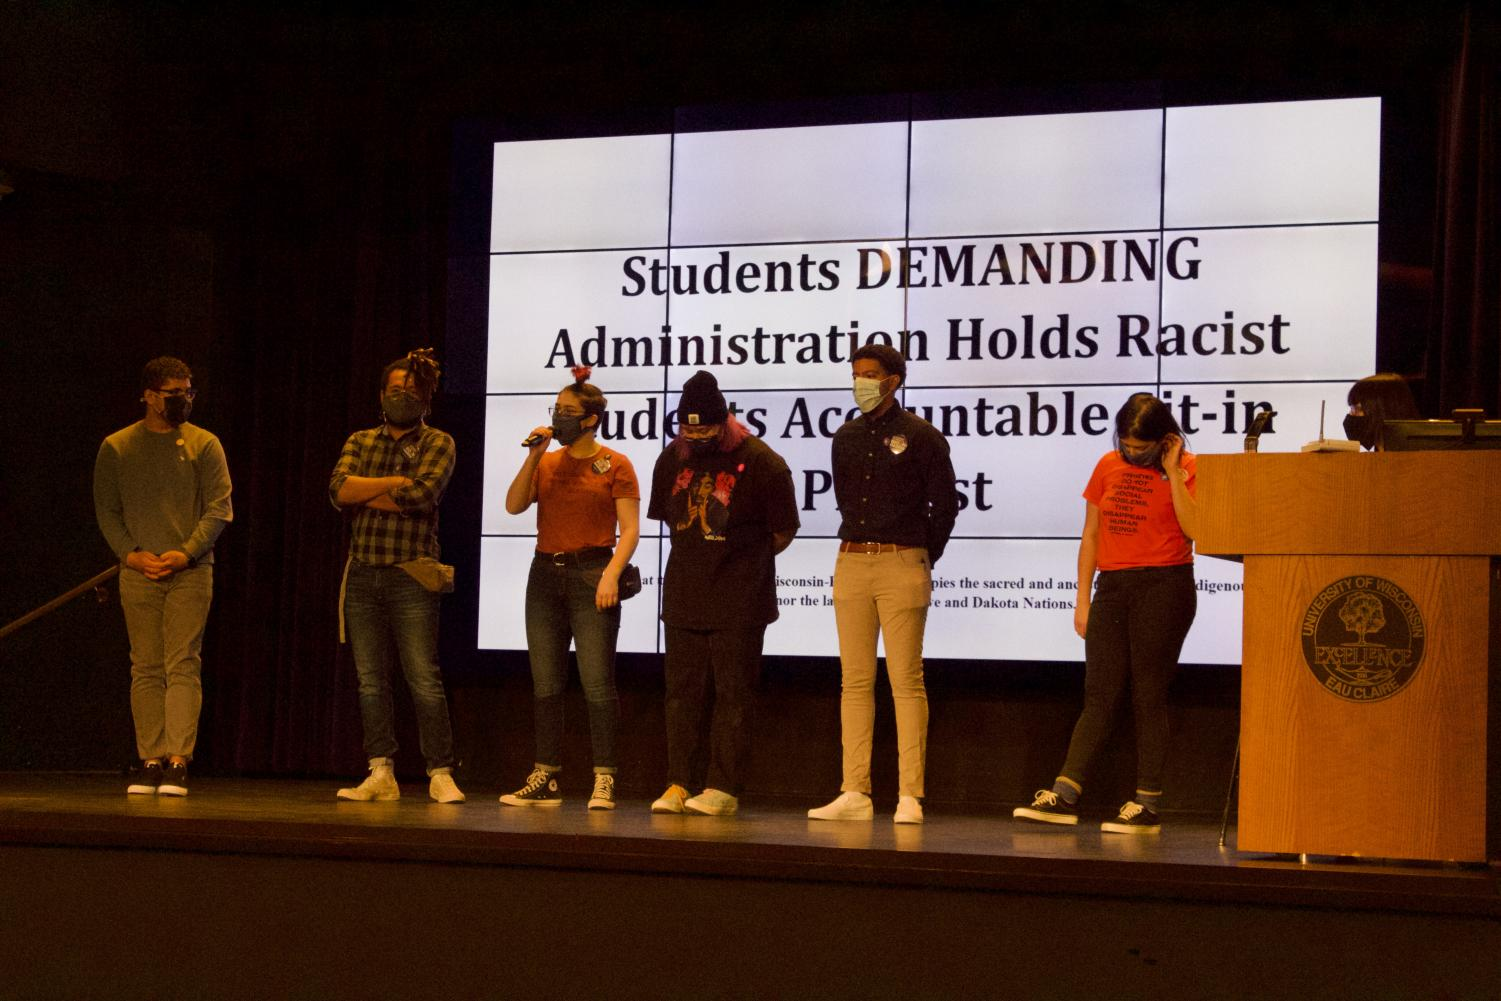 Student organizers introduce themselves to the crowd. ©2021, Natalie Leonardelli